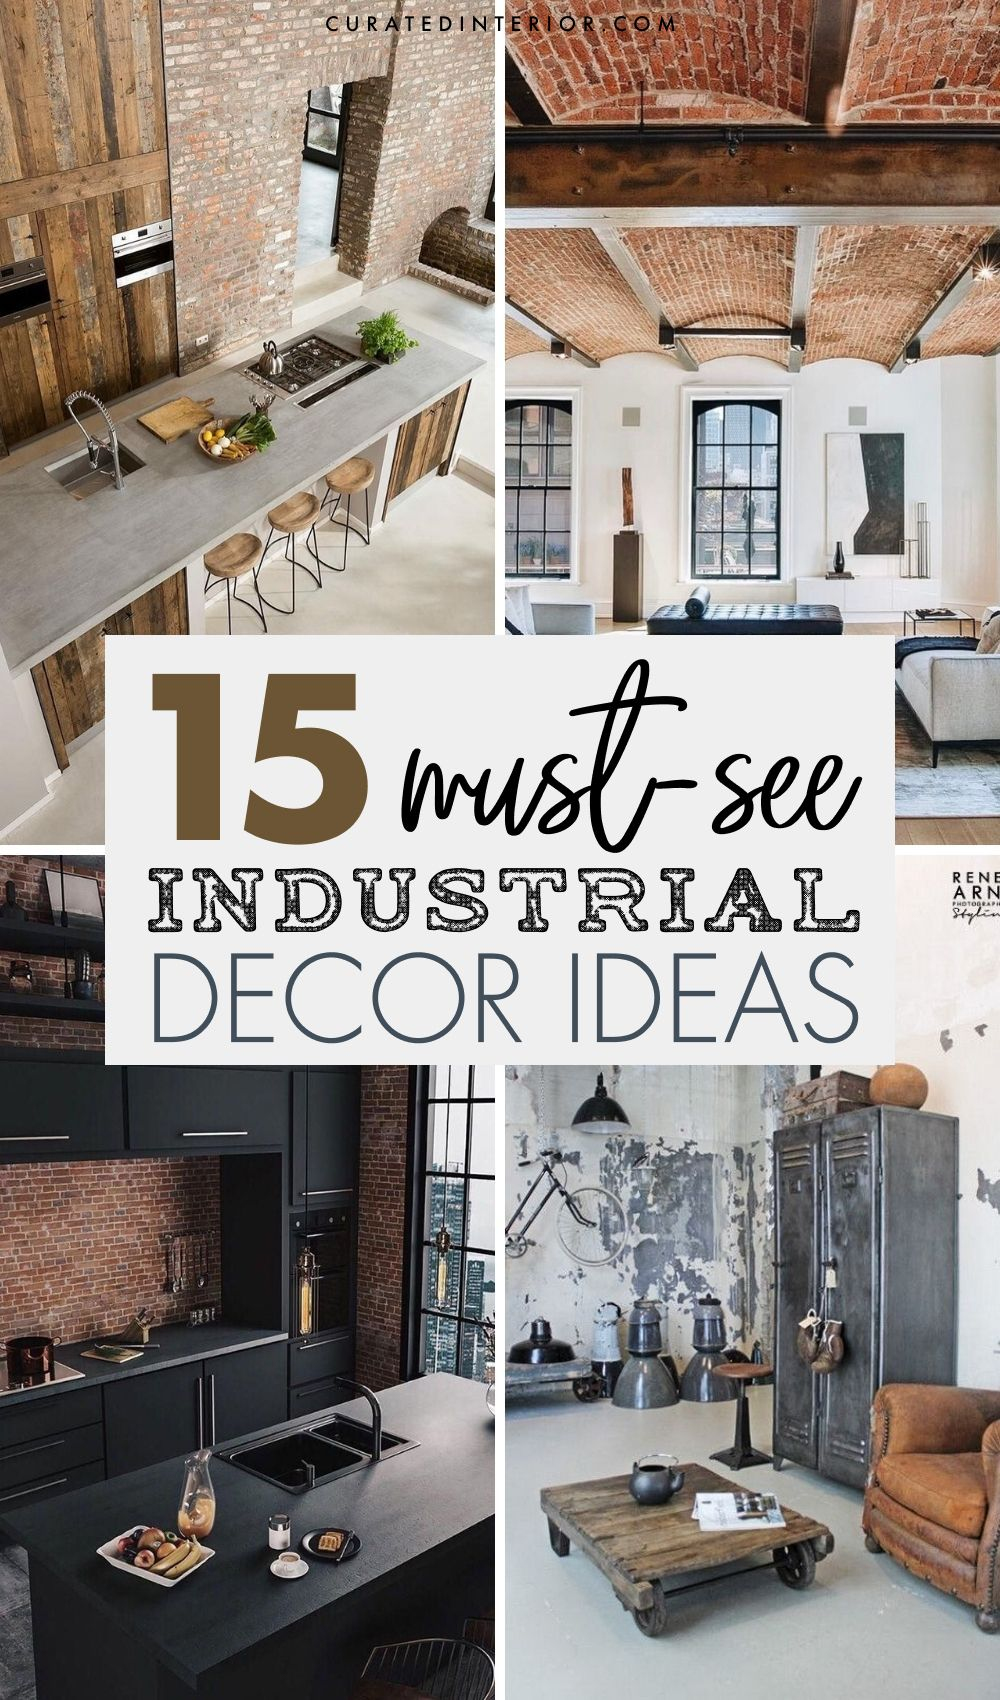 15 Key Elements Of Industrial Decor And Interior Design